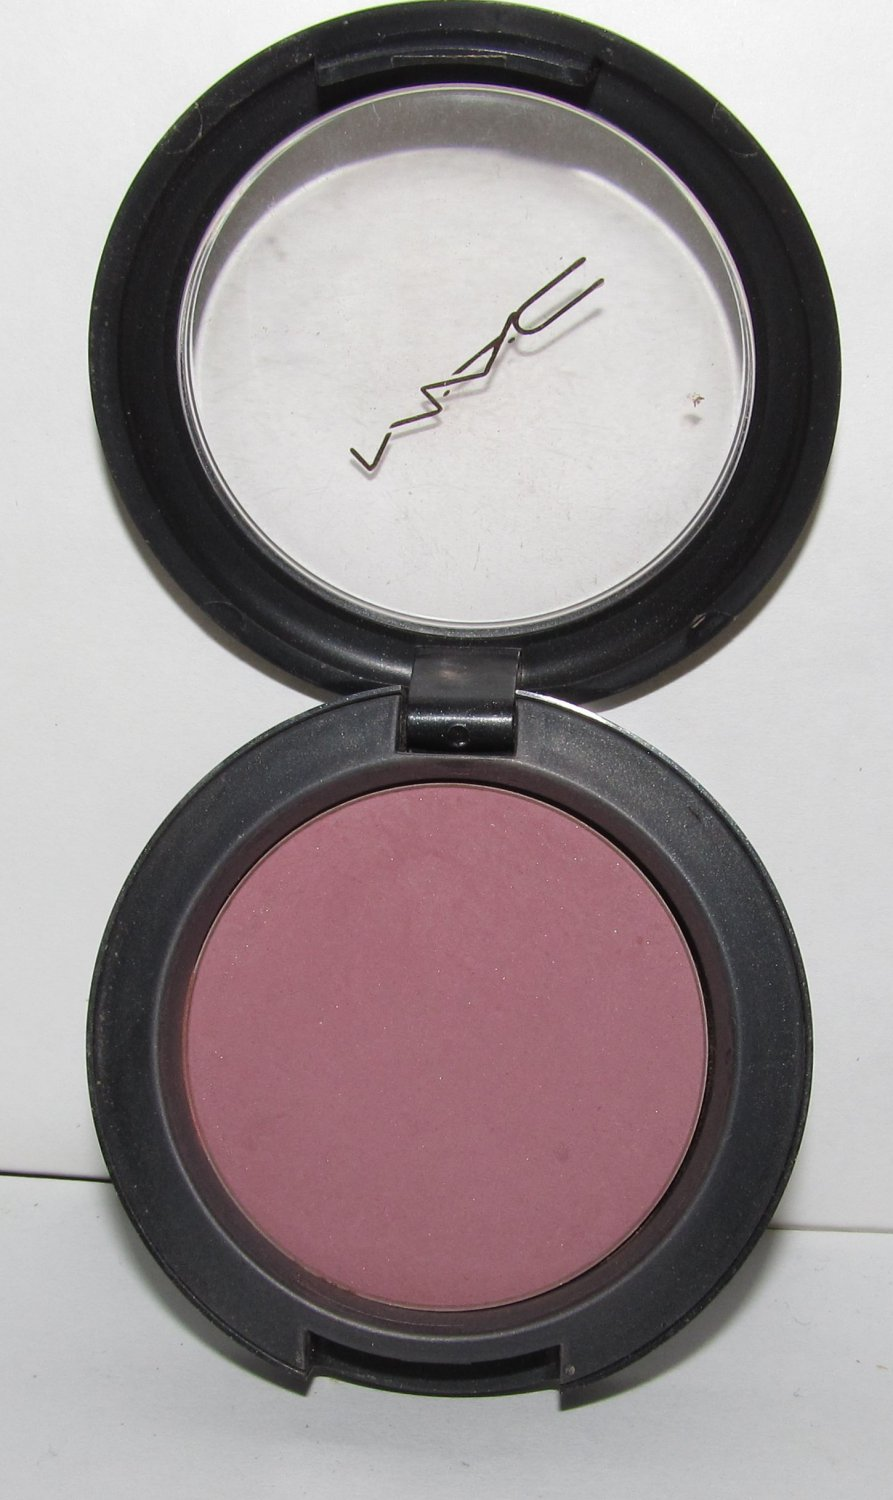 MAC Powder Blush - Breath of Plum